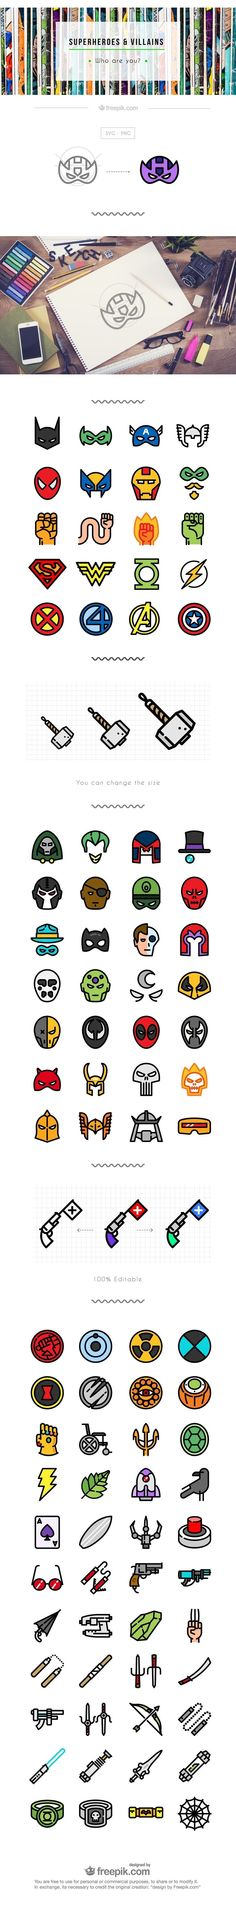 The Flat Superheroes & Villains Icon Set (100 Icons, PNG & SVG)